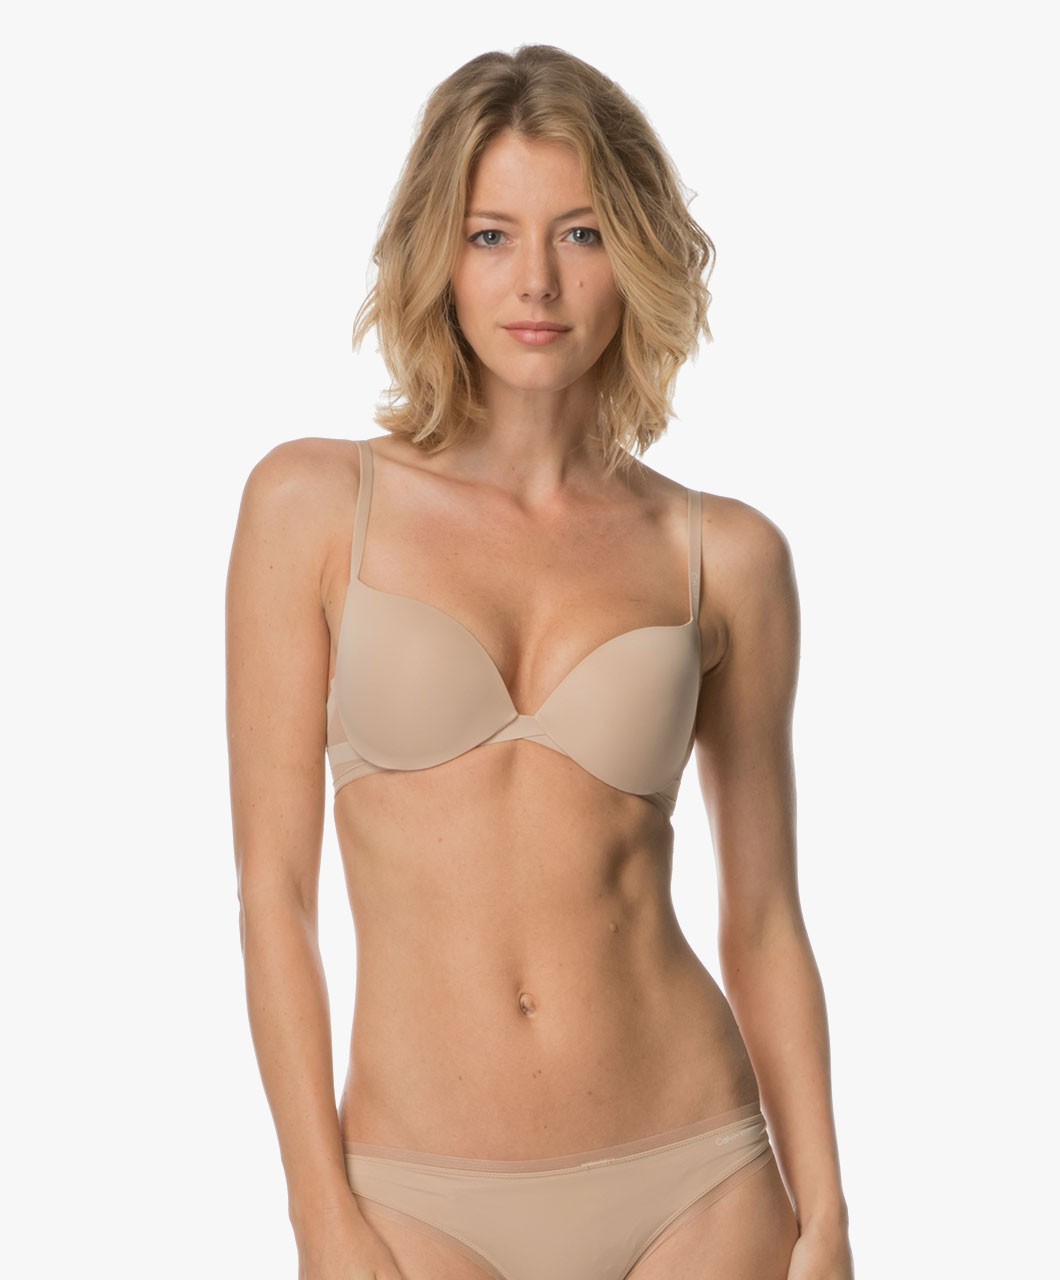 ef042a2ee9ed9 Calvin Klein Sculpted Plunge Push-up Bra - Bare - qf1832e 20n - bare